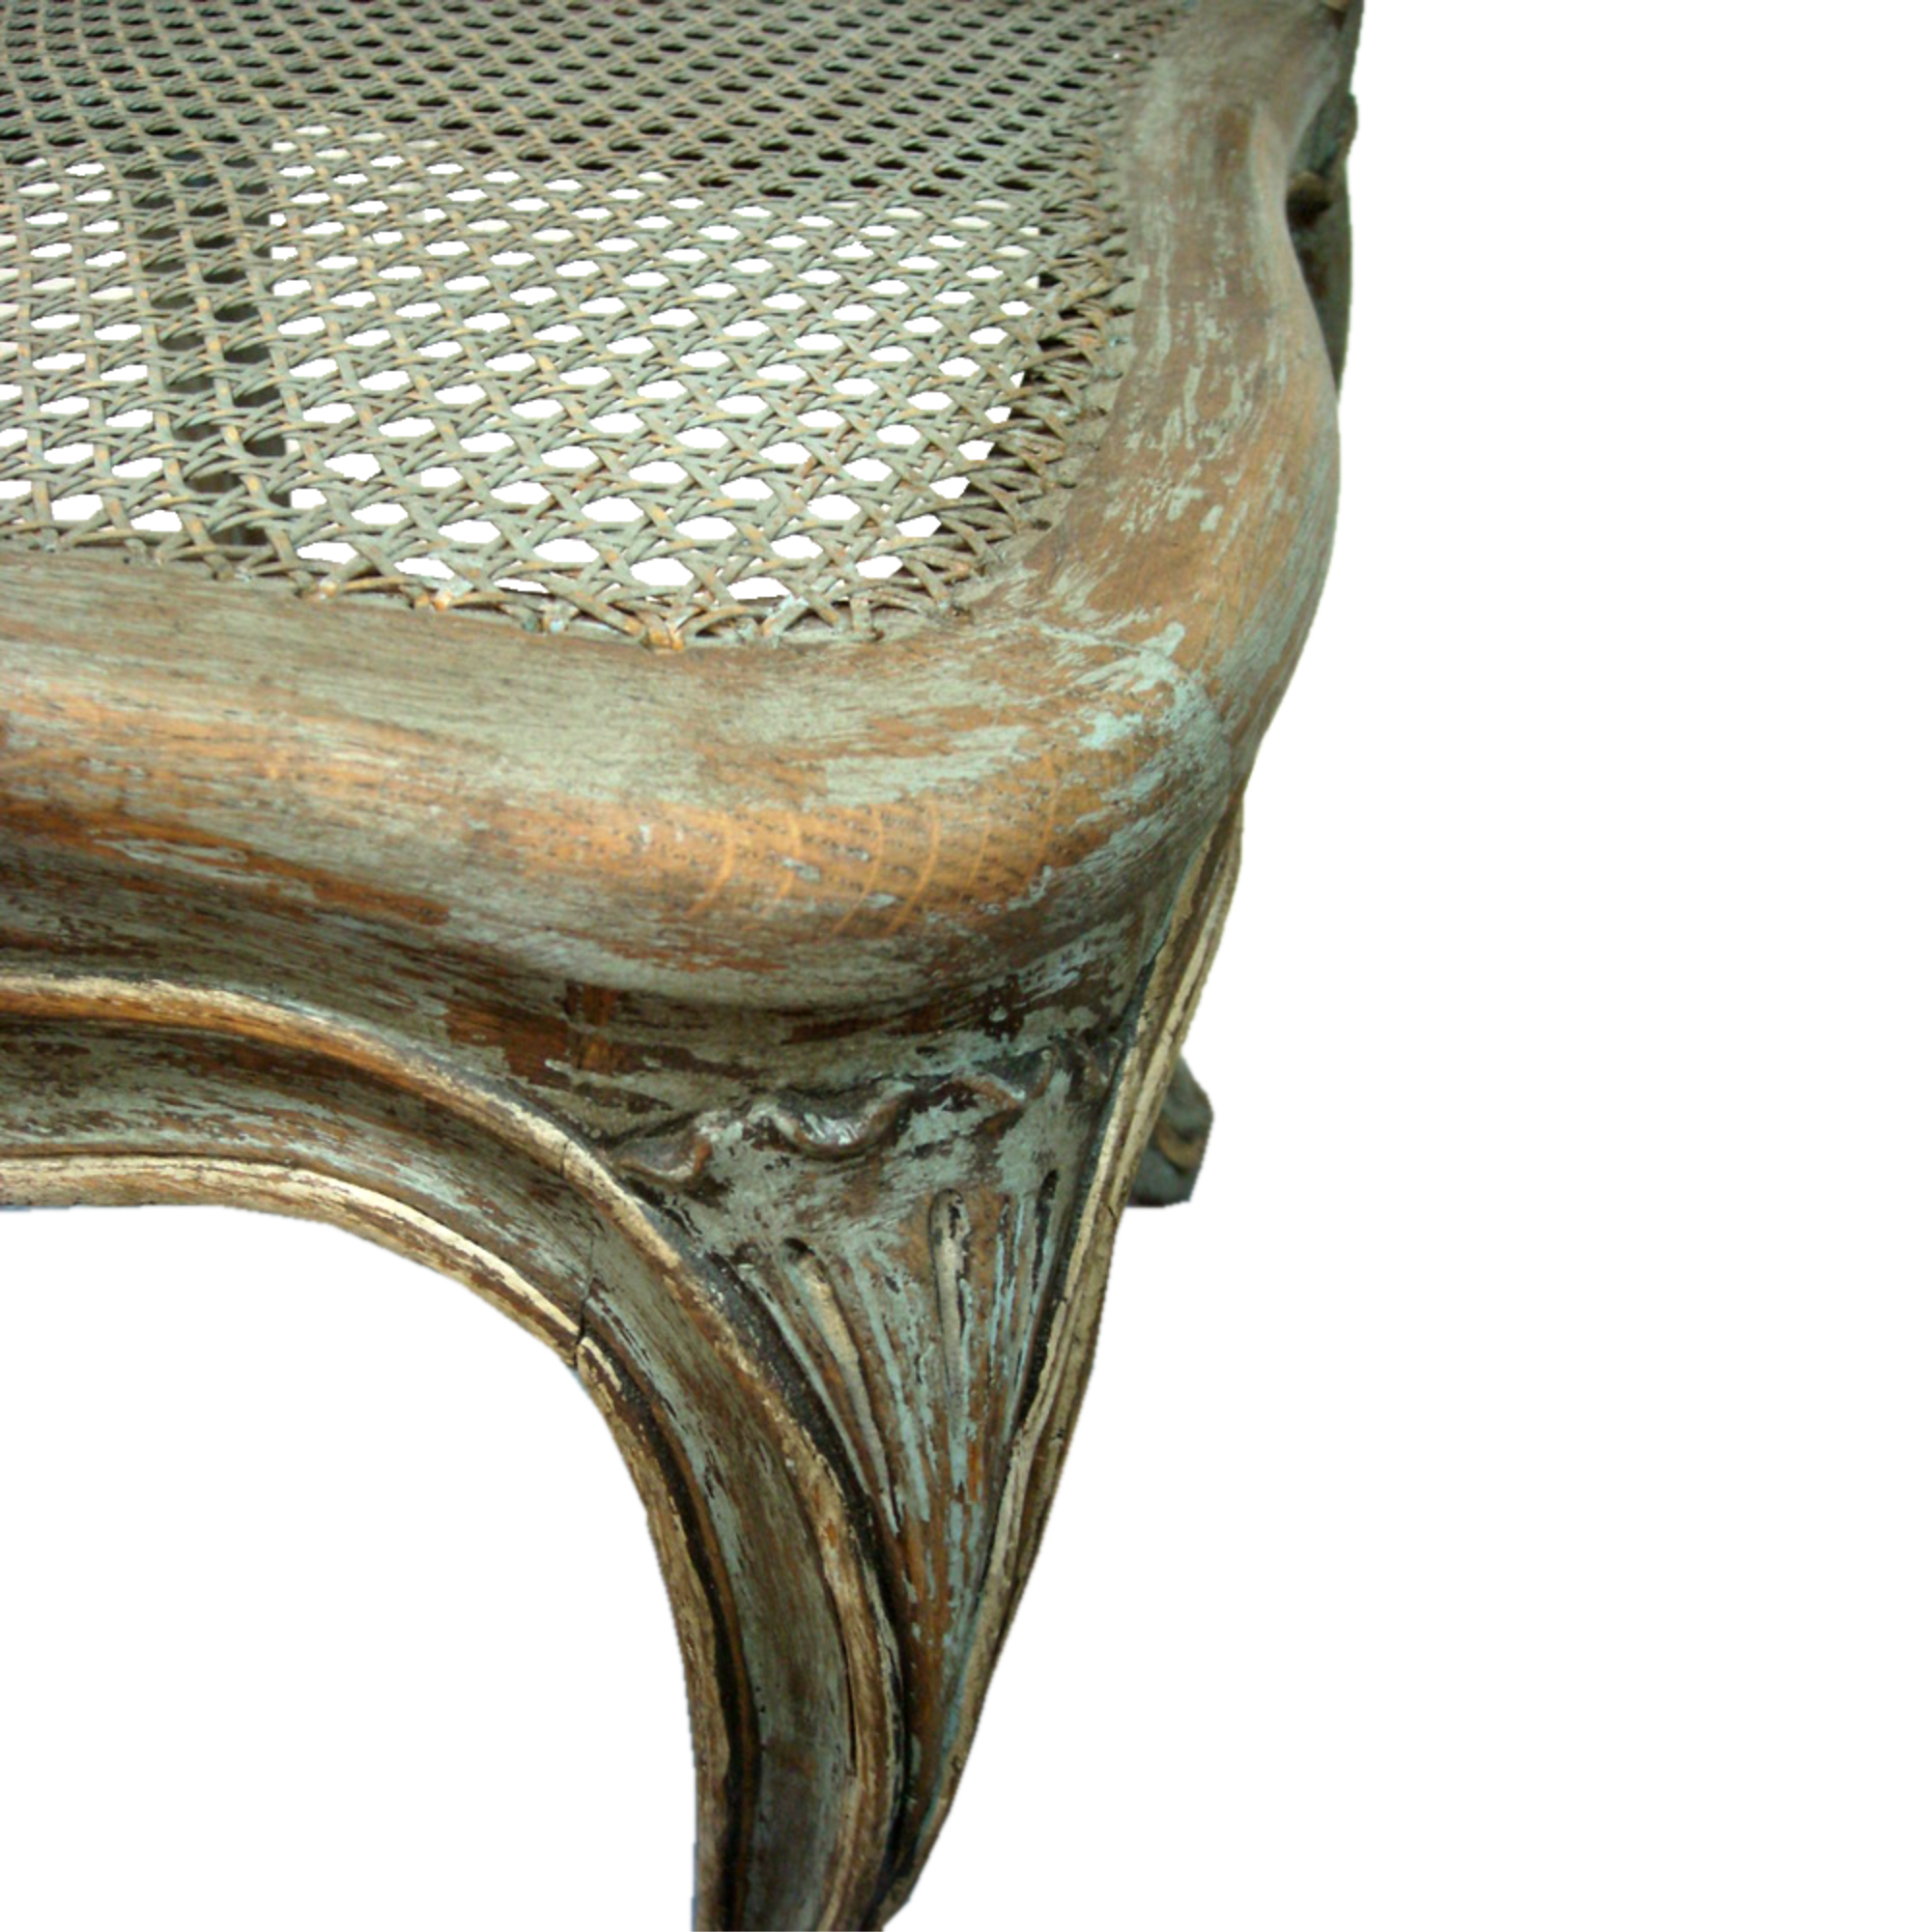 Antiqued-chair-cained.jpg